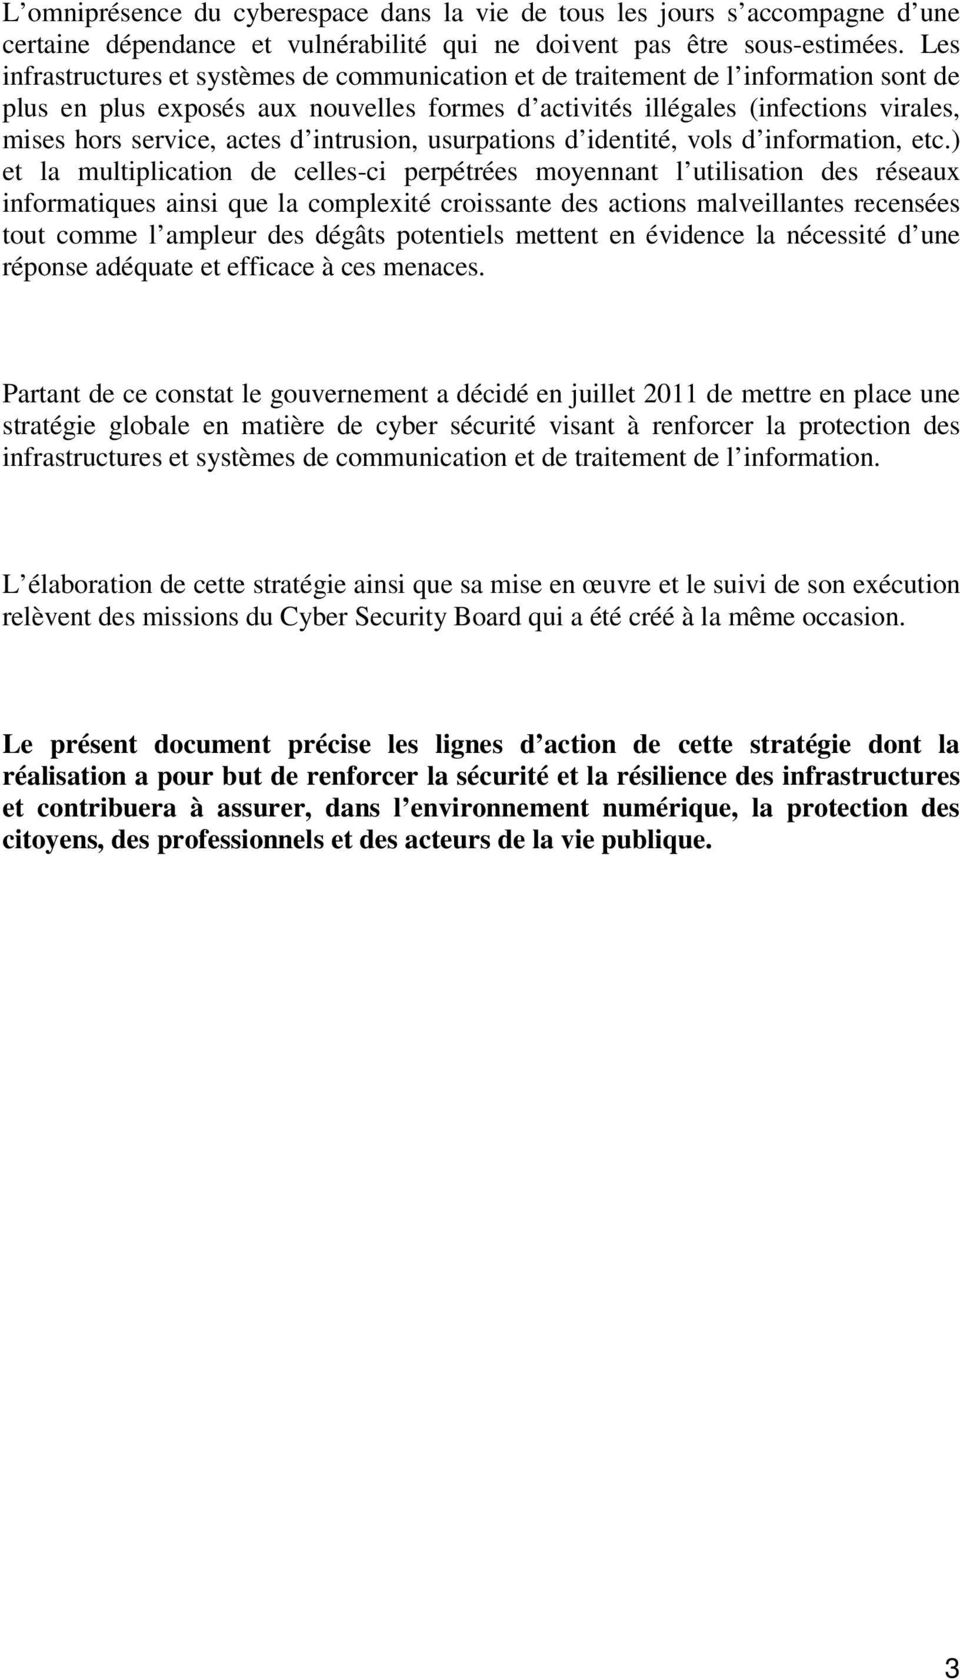 actes d intrusion, usurpations d identité, vols d information, etc.